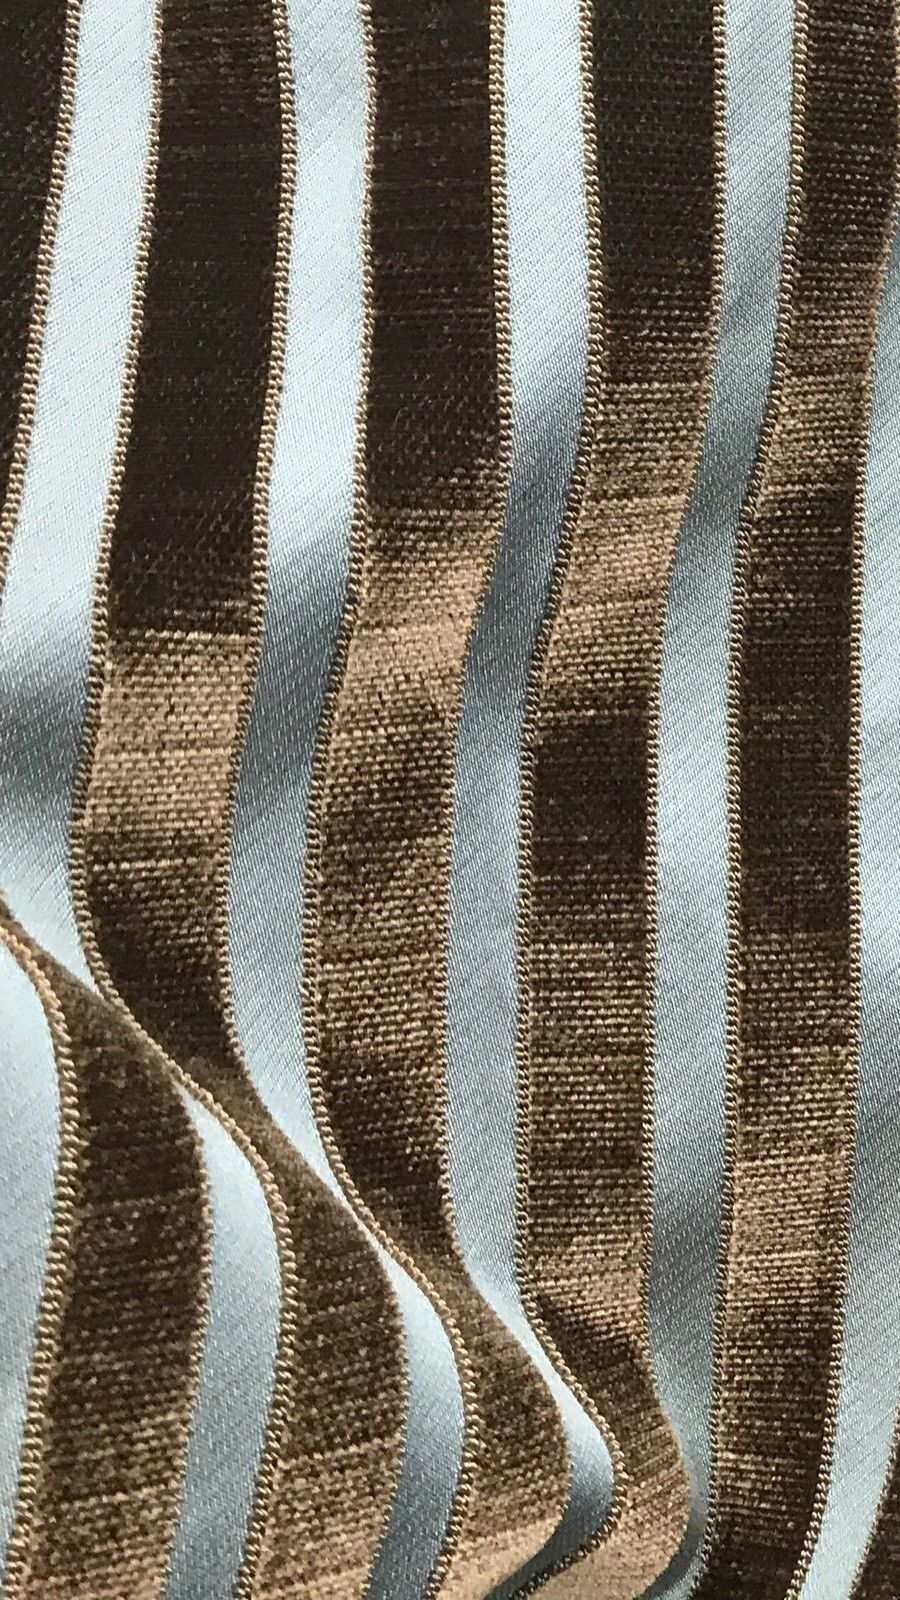 Made In Italy Burnout Damask Chenille Velvet Fabric Stripes - Upholstery - Fancy Styles Fabric Pierre Frey Lee Jofa Brunschwig & Fils